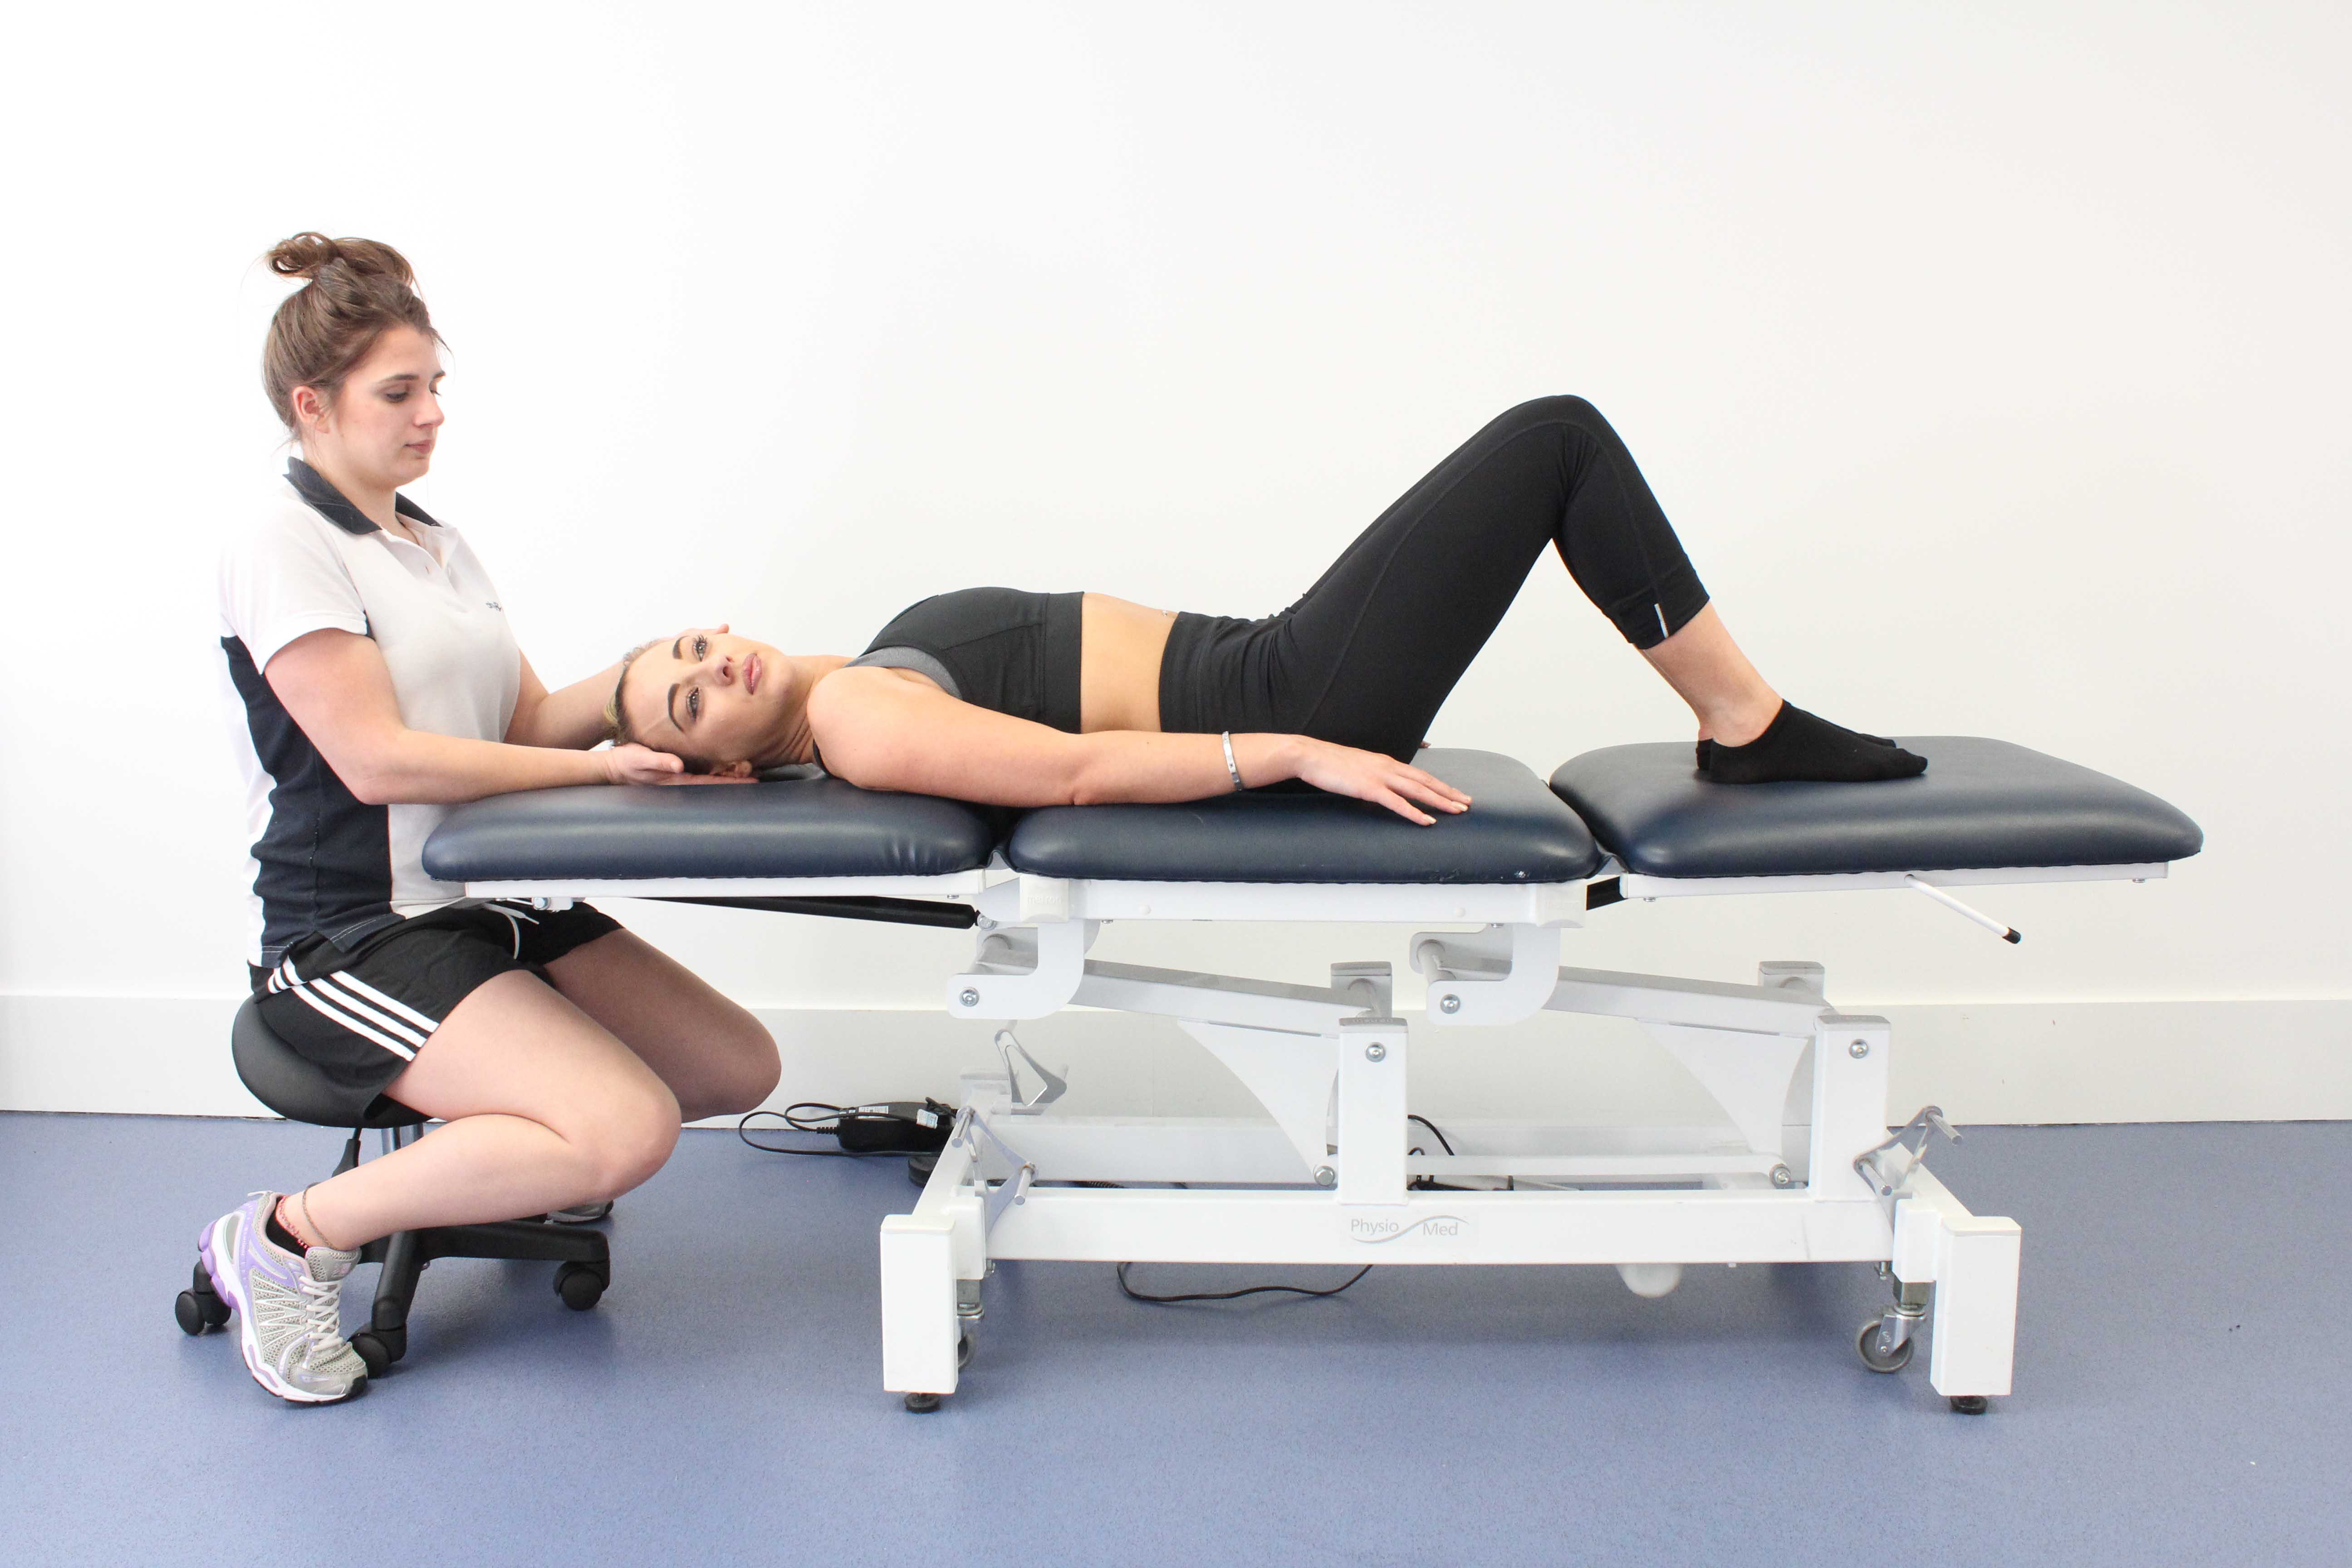 Specilaist physiotherapist performing the Eply manoeuvre to provide vestibular rehabilitation